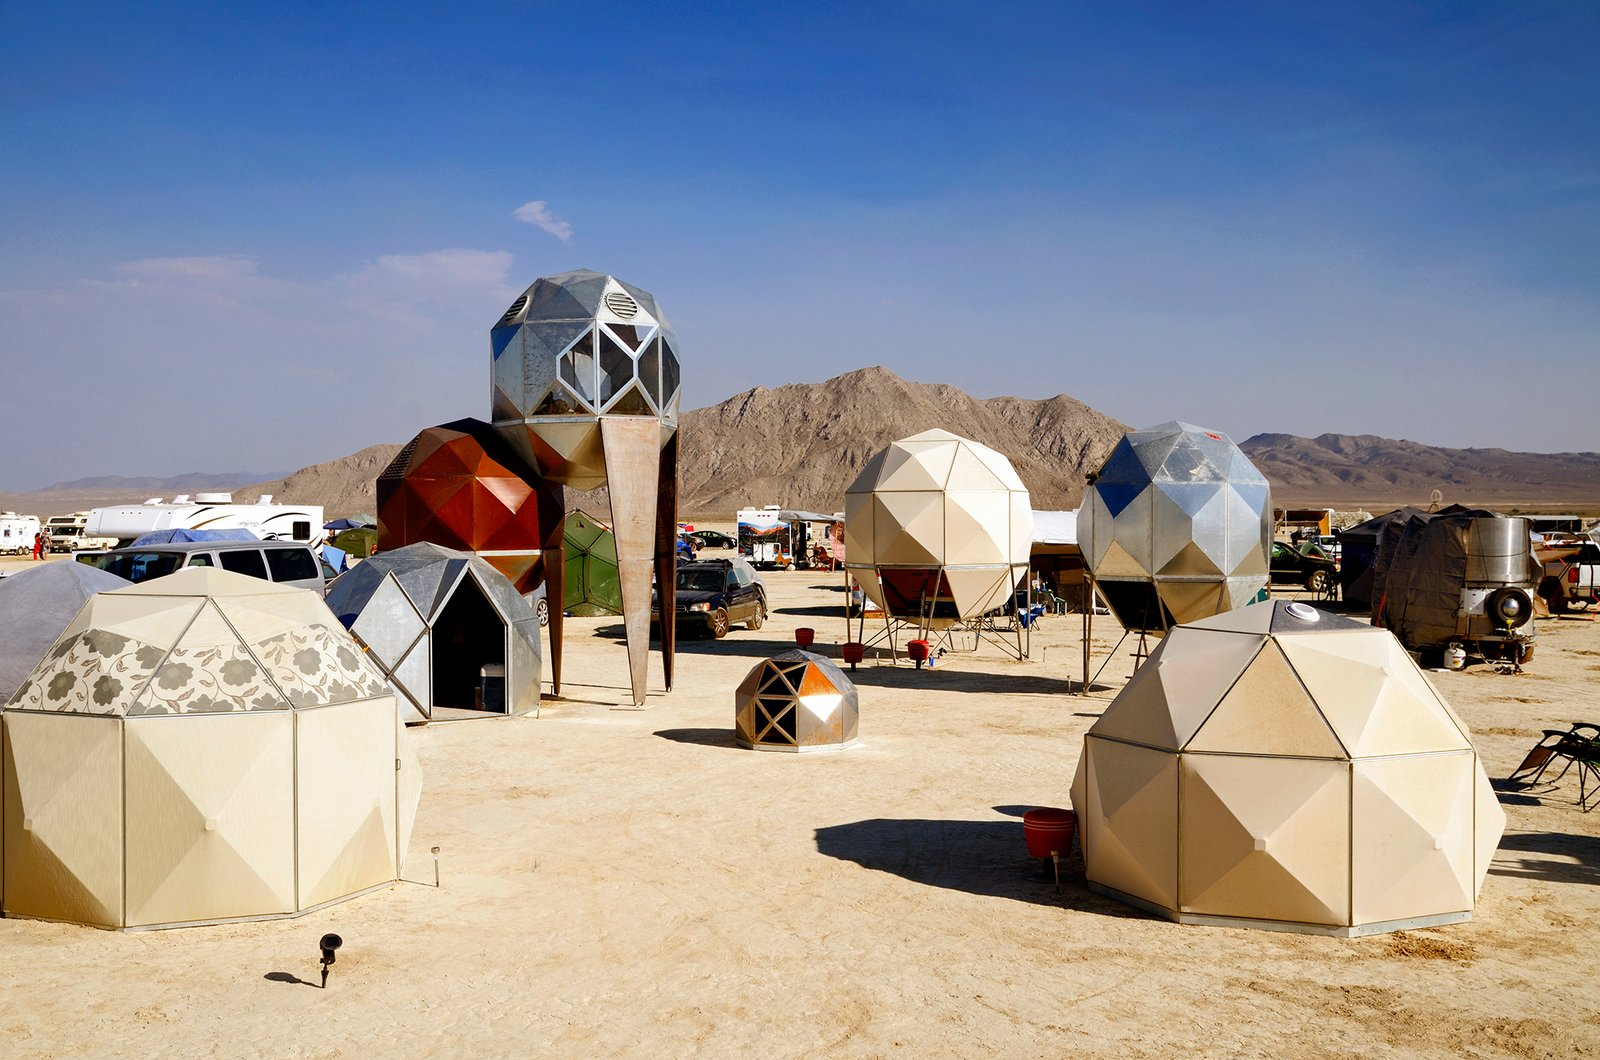 Exterior, Tent Building Type, Dome RoofLine, and Prefab Building Type Metal Pods  by Scott Parenteau  Photos from 16 Otherworldly Photos of Burning Man Architecture